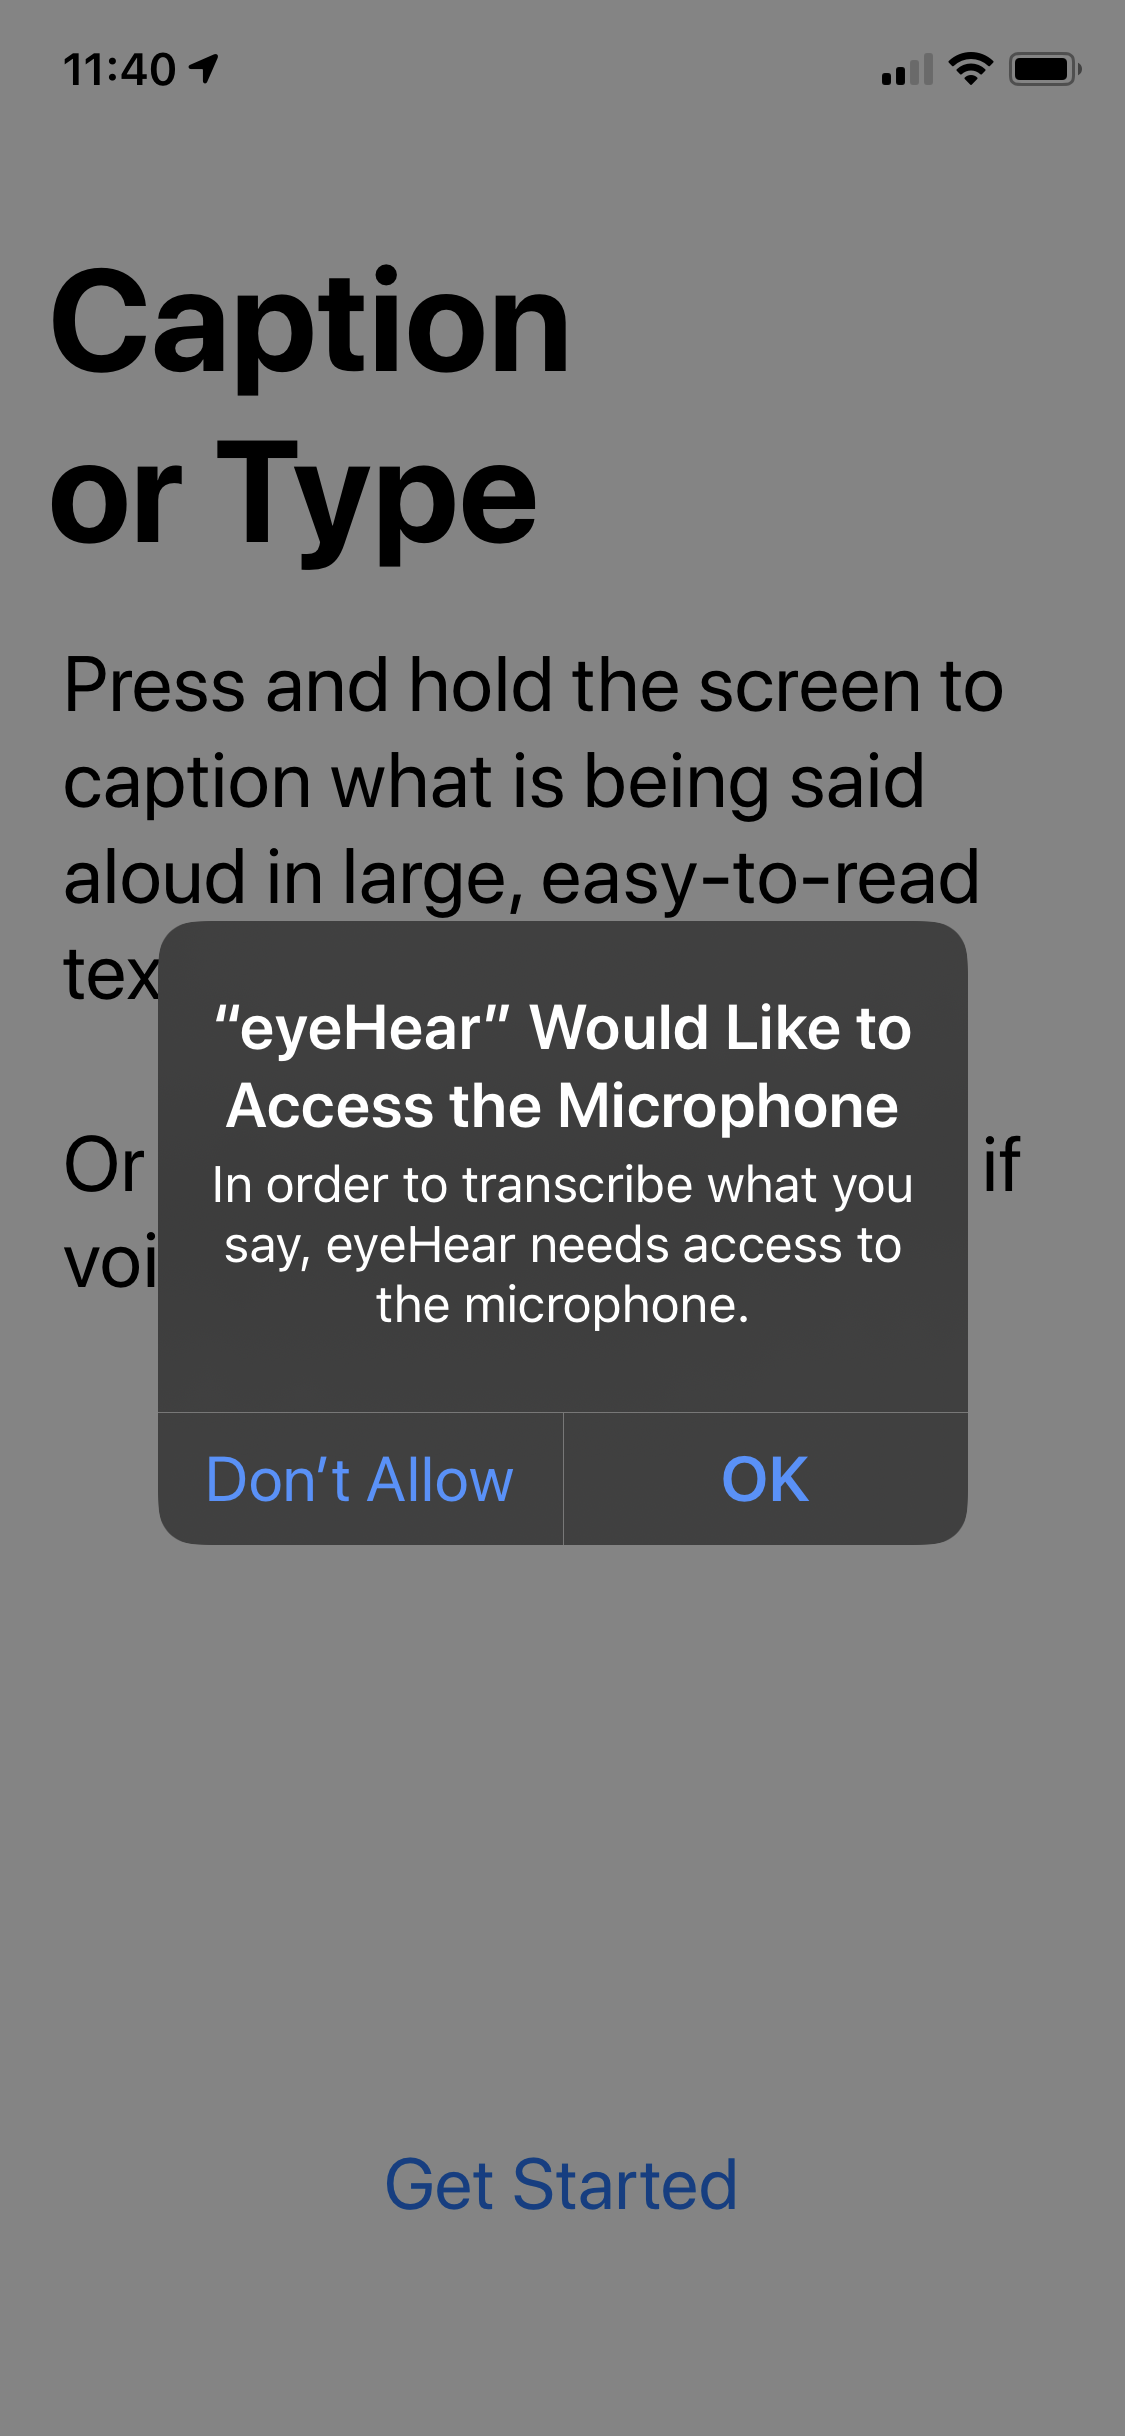 iOS Microphone Access Request Dialogue